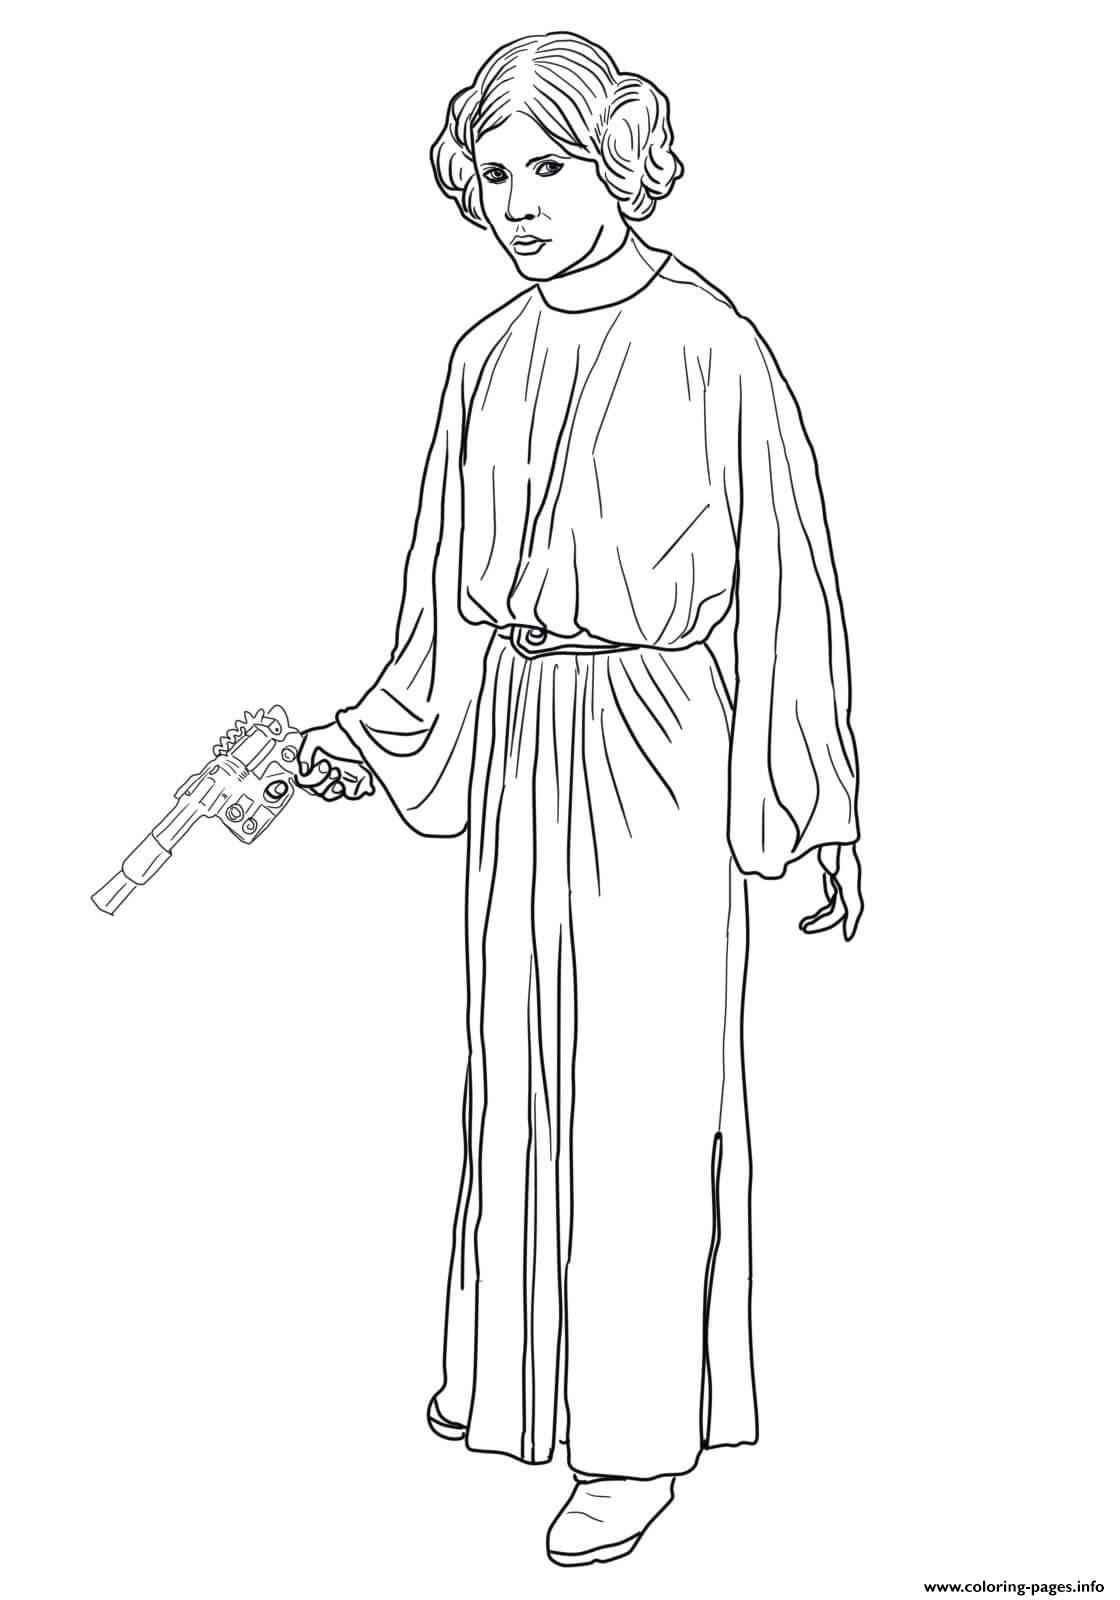 Princess Leia Star Wars Episode VI Return Of The Jedi coloring pages